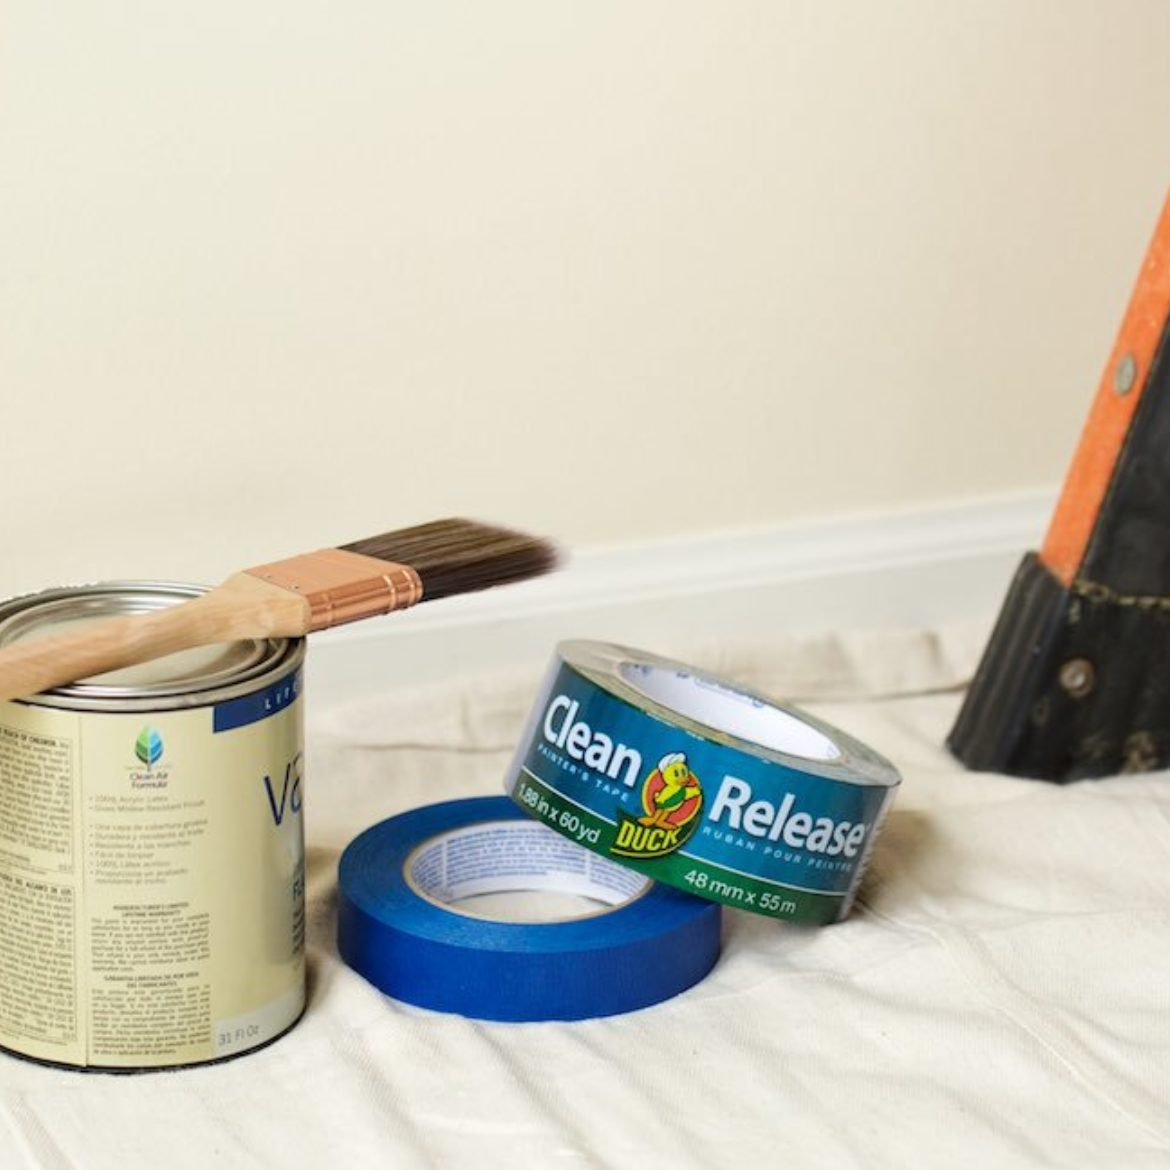 Applying and Removing Duck® Brand Painter's Tape